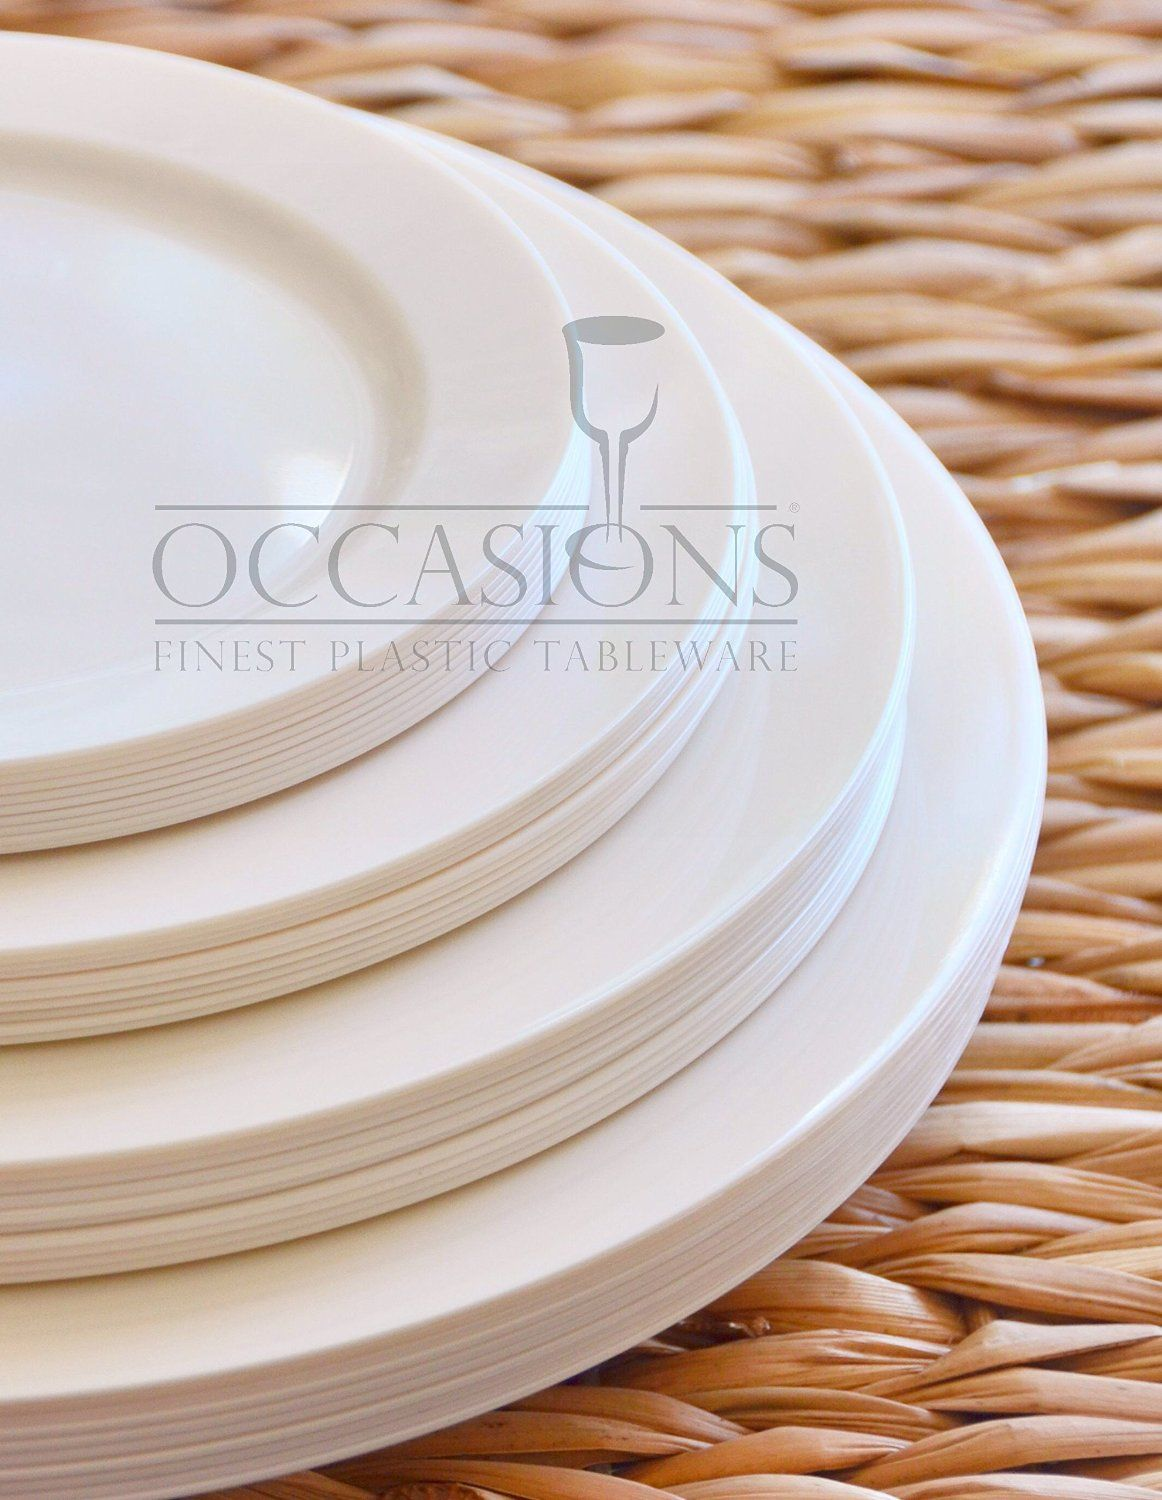 Amazon.com Bulk Plastic China Disposable Plates Wholesale Ivory - Choose & Amazon.com: Bulk Plastic China Disposable Plates Wholesale Ivory ...